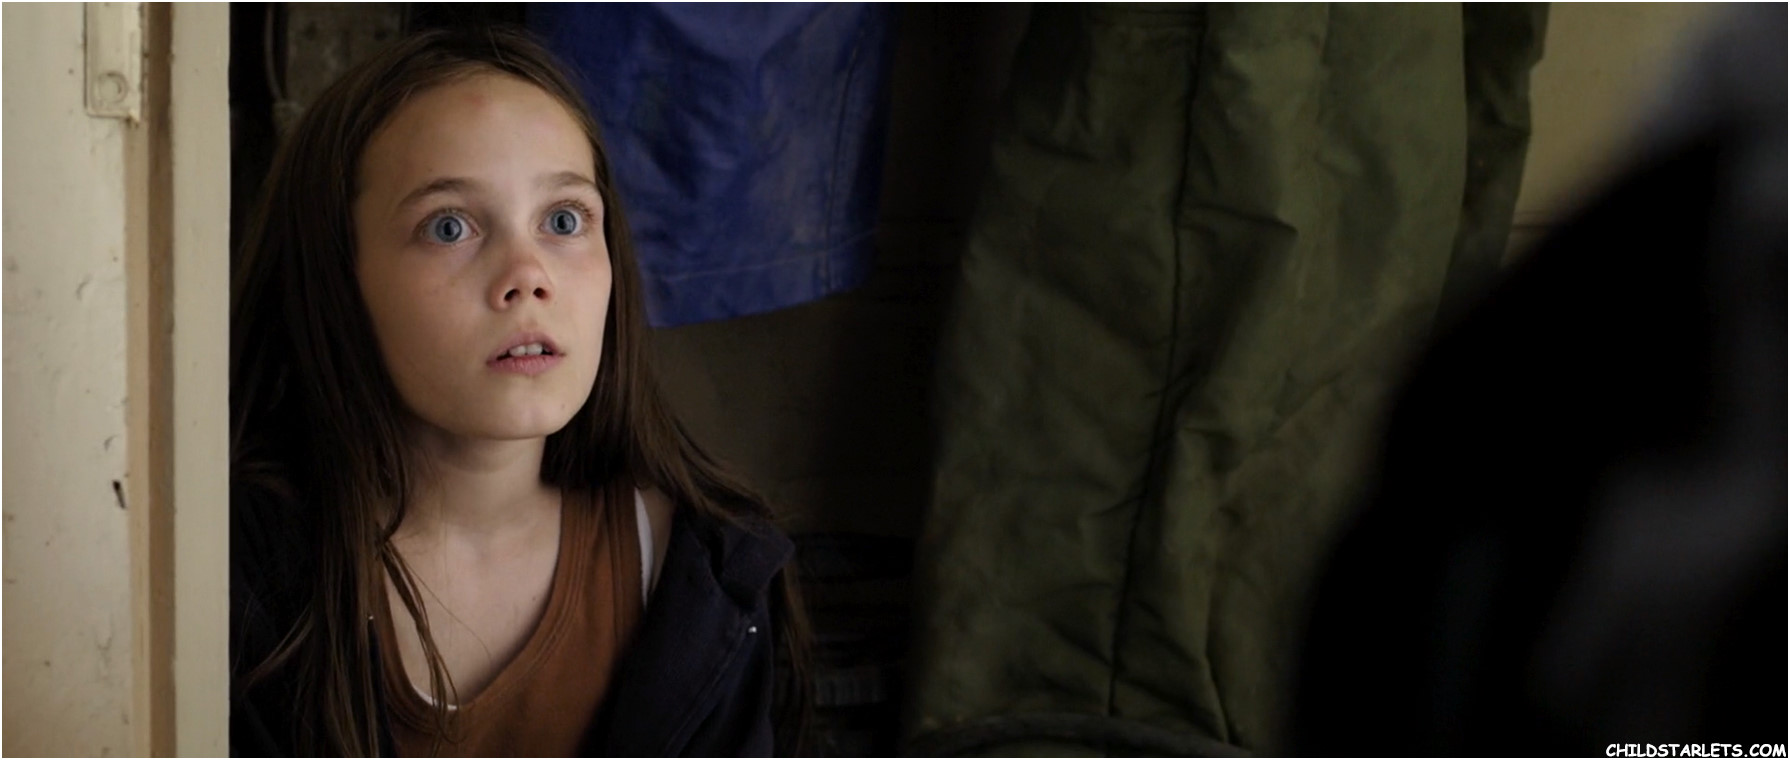 Oona Laurence Chlid Actress - Lamb